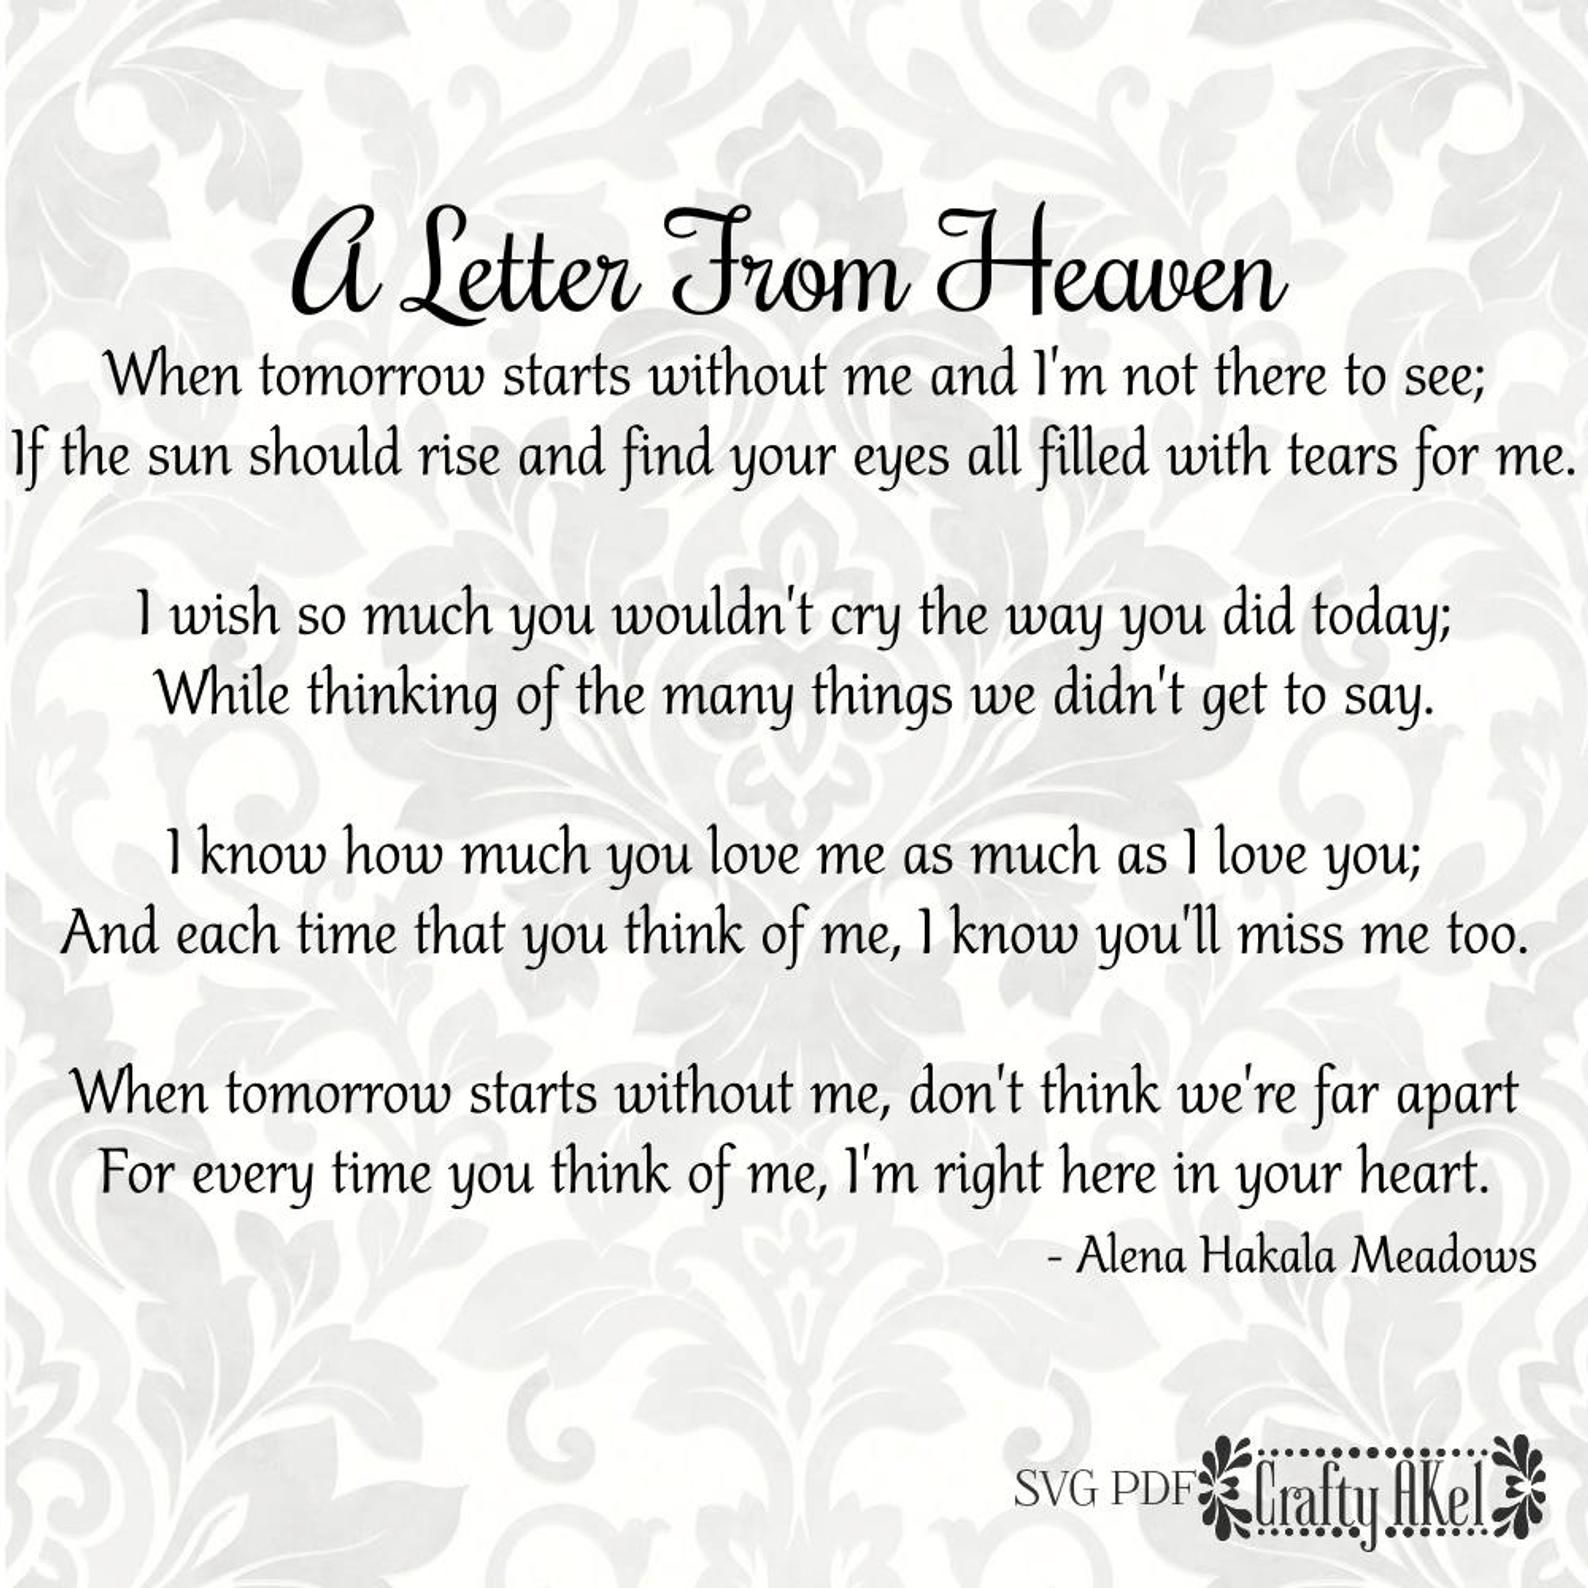 A Letter From Heaven Poem